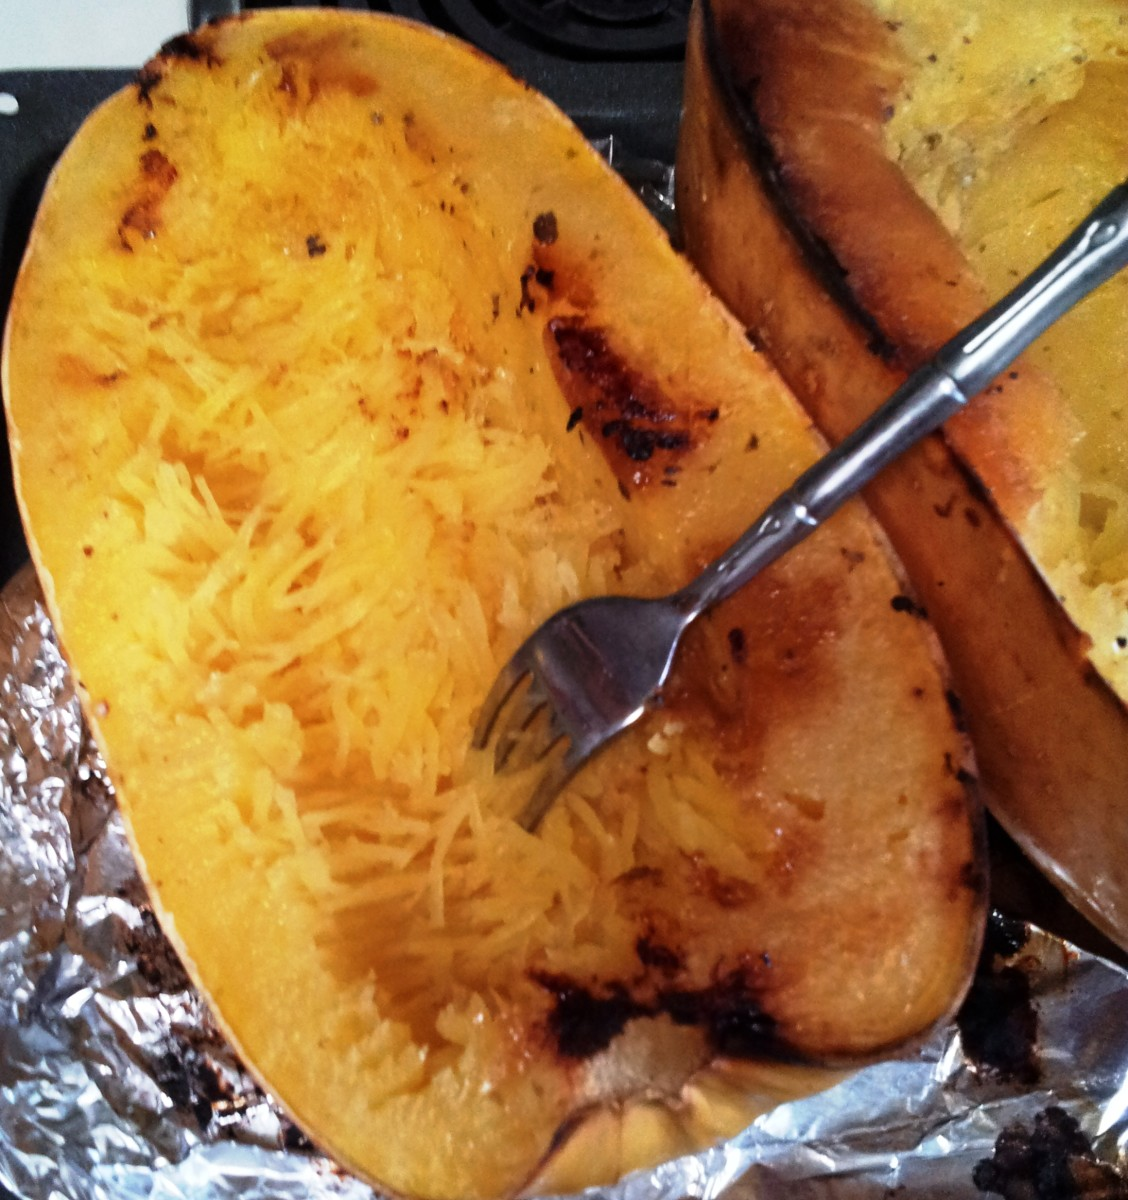 Pull a fork horizontally to achieve the best 'spaghetti' from your baked squash. Voila!